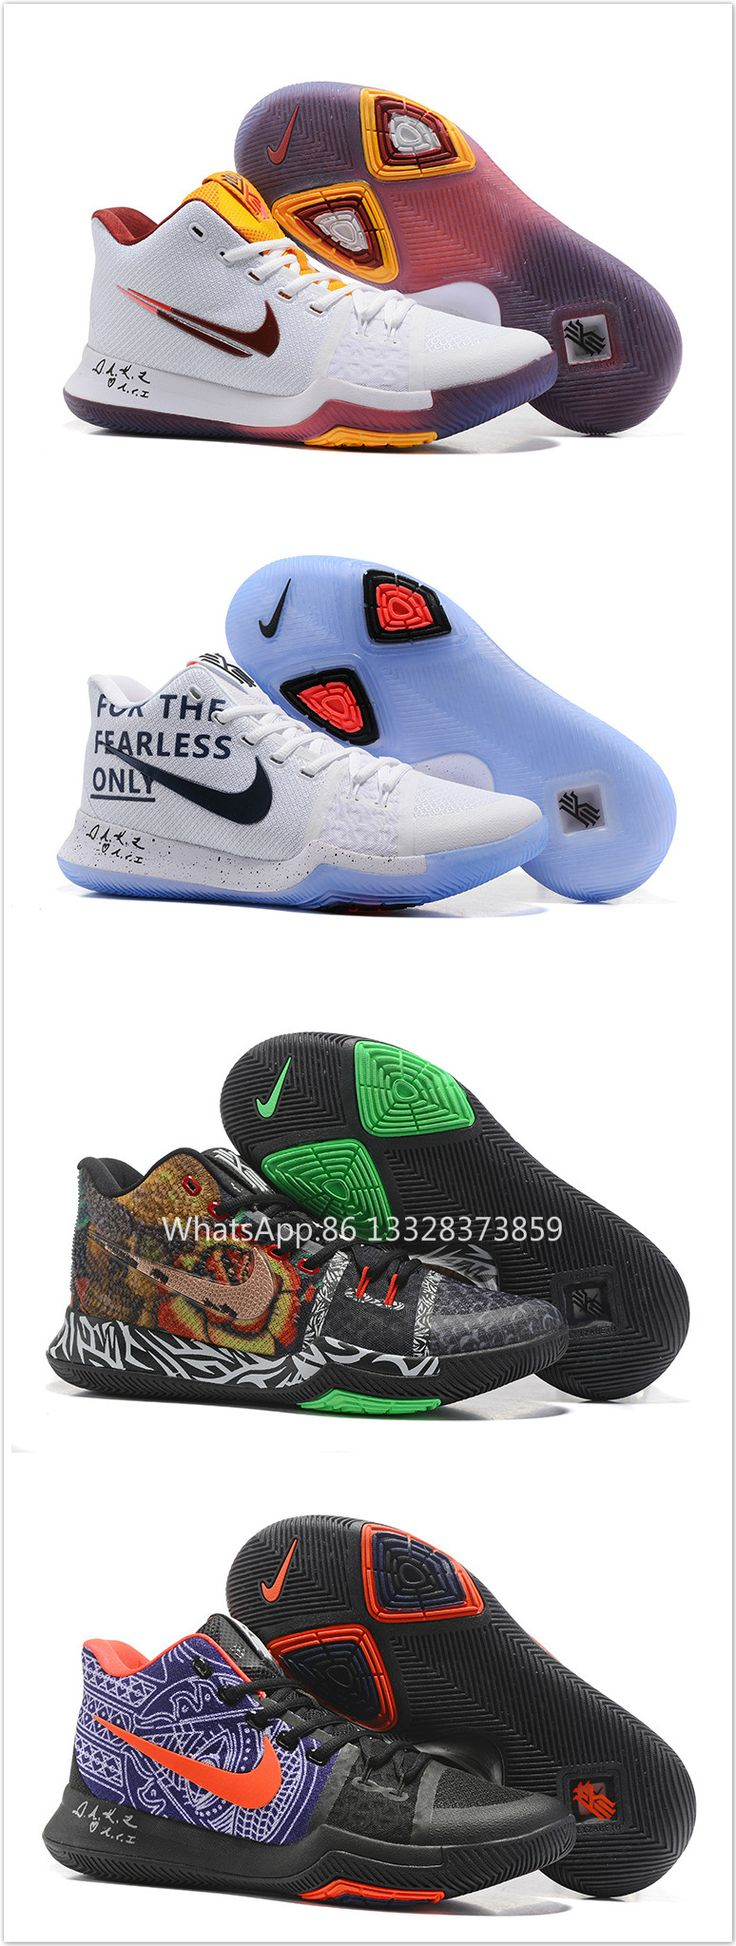 Free Shipping Kyrie Irving 3 Knit 2017 shoes 40-46 WhatsApp:86 13328373859 WeChat:e2shoes